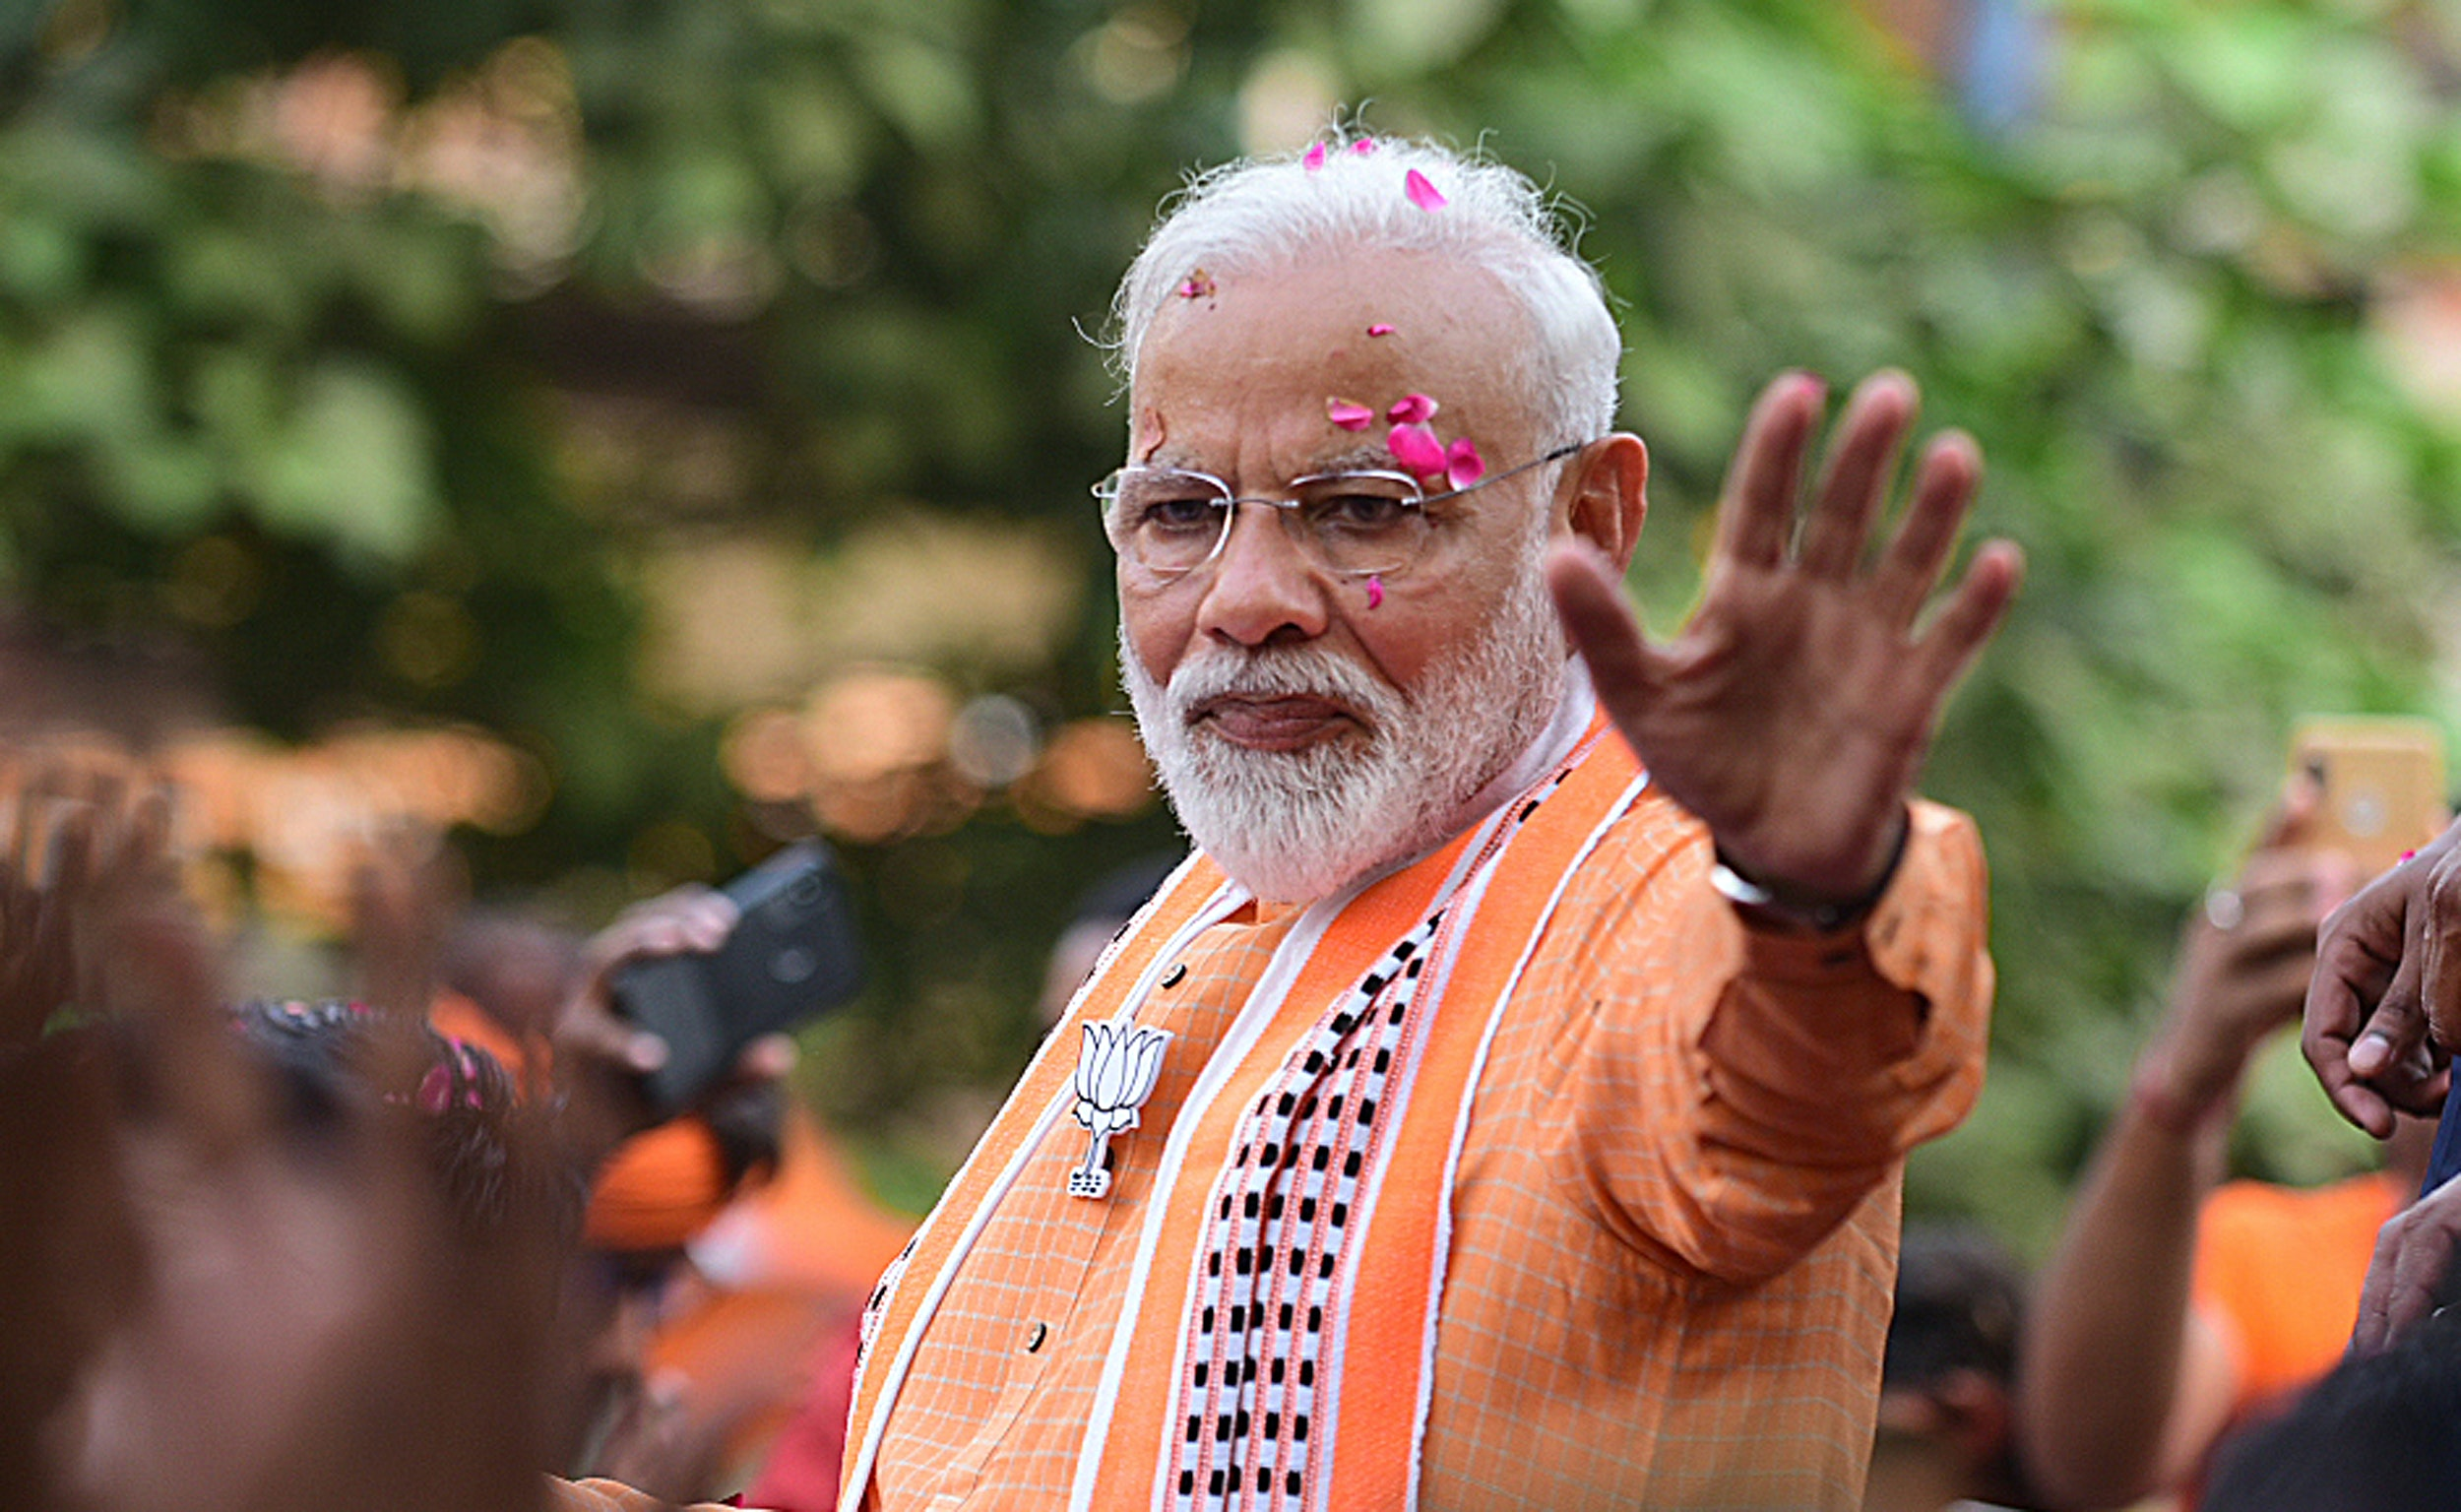 Indian election: Modi win delivered thanks to faith in development pledges